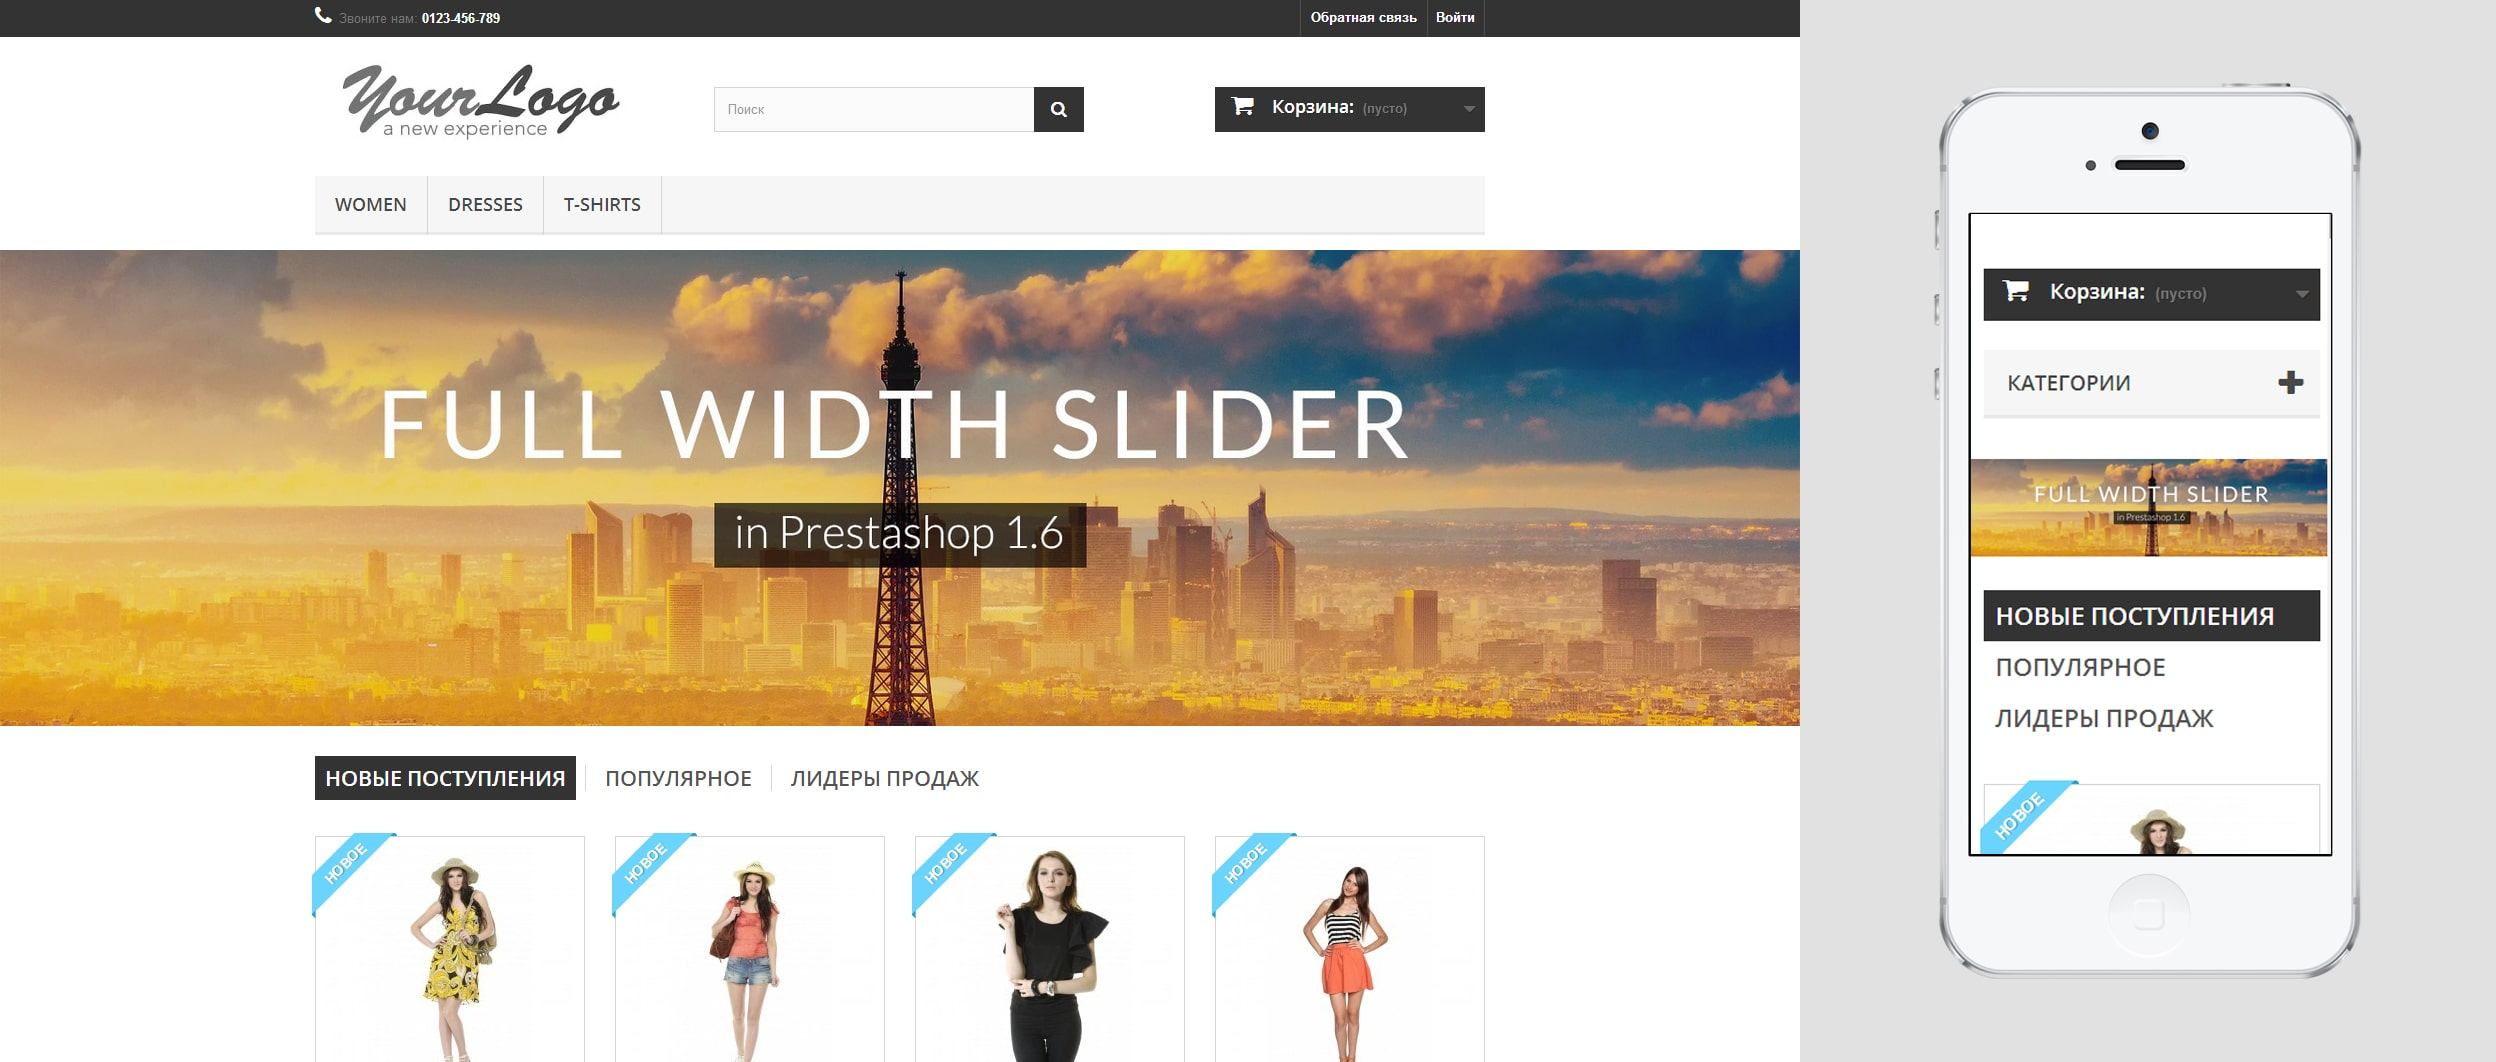 How to Create Full Width Image Slider in Prestashop 1.6